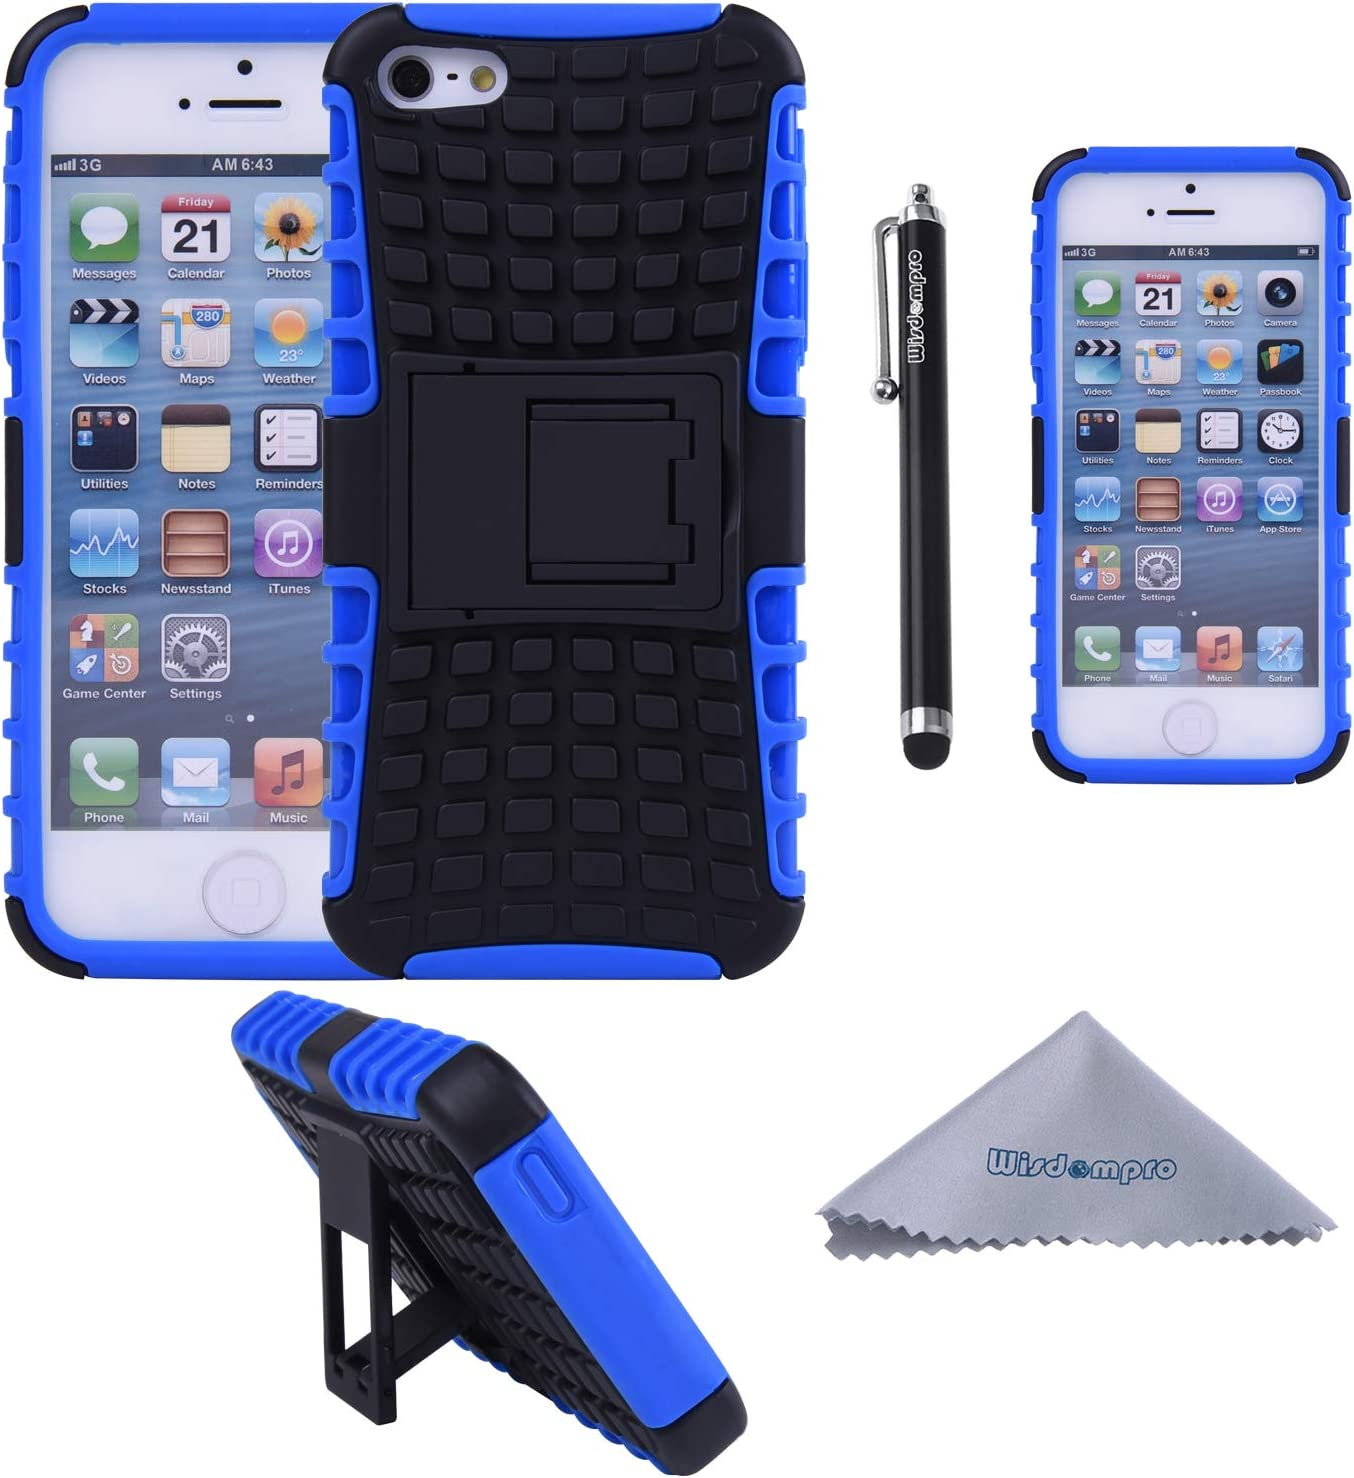 iPhone SE 2016 Case, iPhone 5s, 5 Case, Wisdompro 2 Piece in 1 Dual Layer Heavy Duty Hard Soft Hybrid Rugged Protective Case with Foldable Kickstand for Apple iPhone 5/5s/SE 1st Generation -Blue/Black